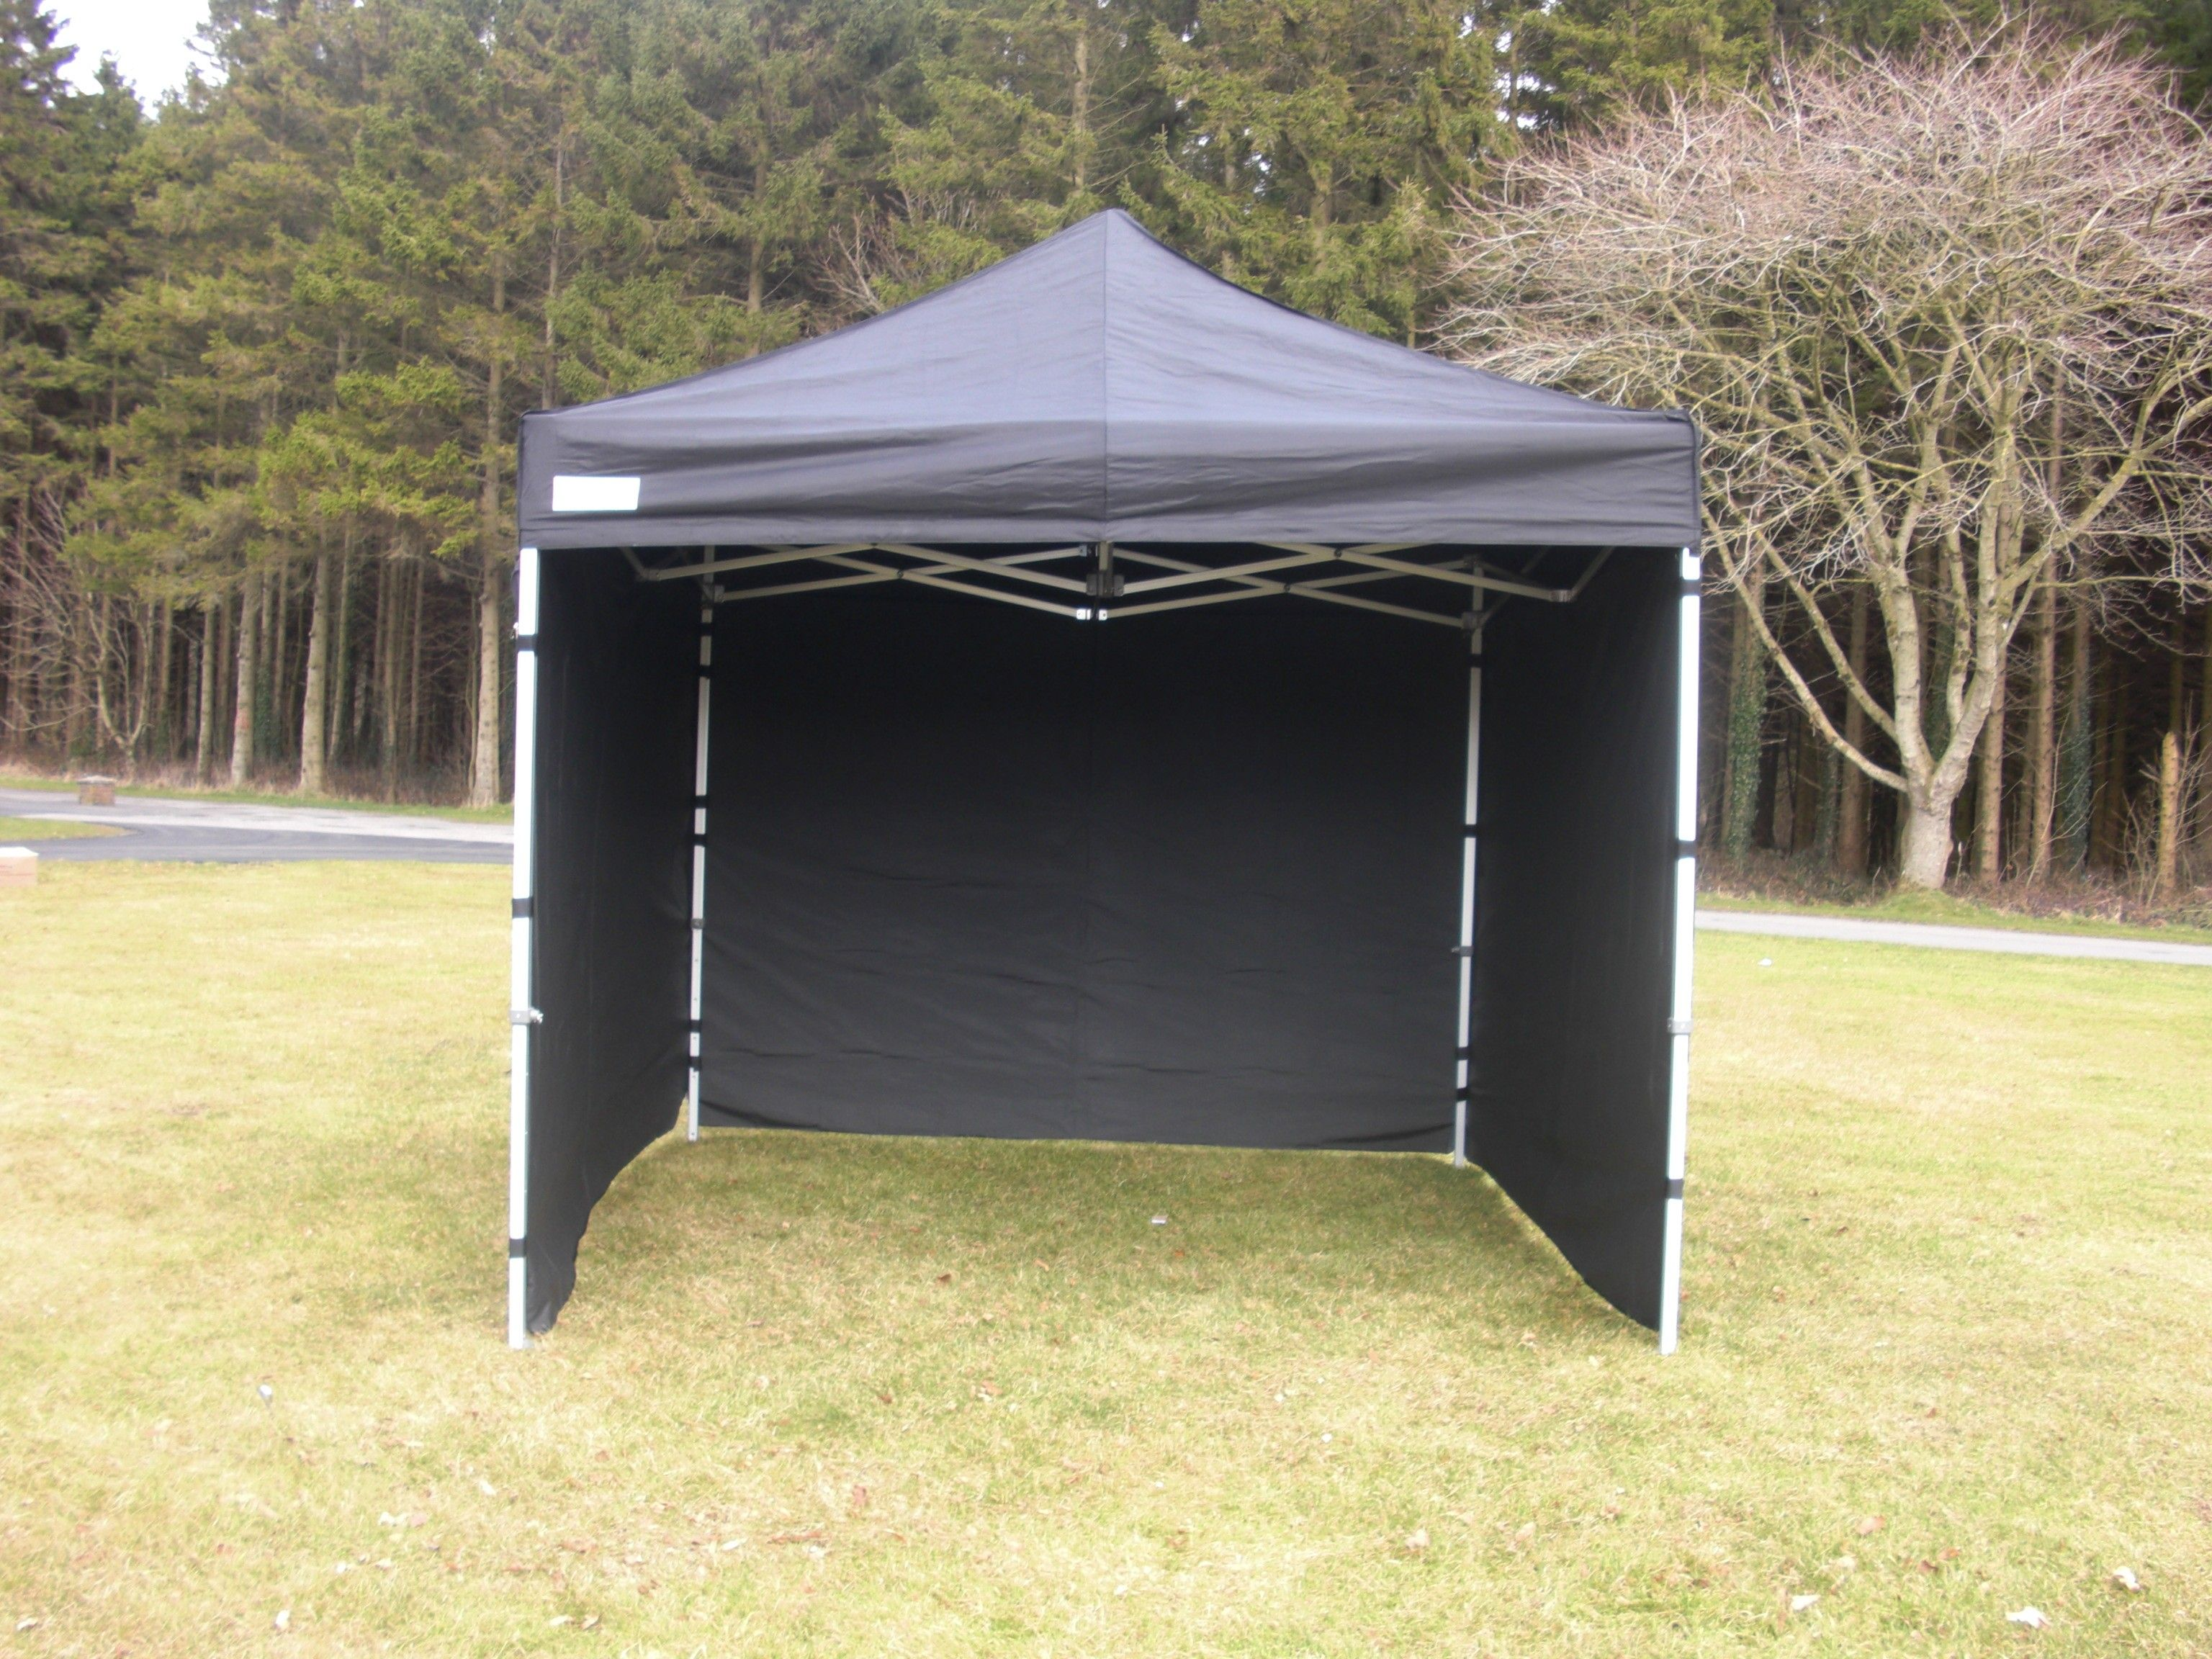 Tents & This 3m x 3m heavy duty Industrial Pop Up gazebo Black offers you ...